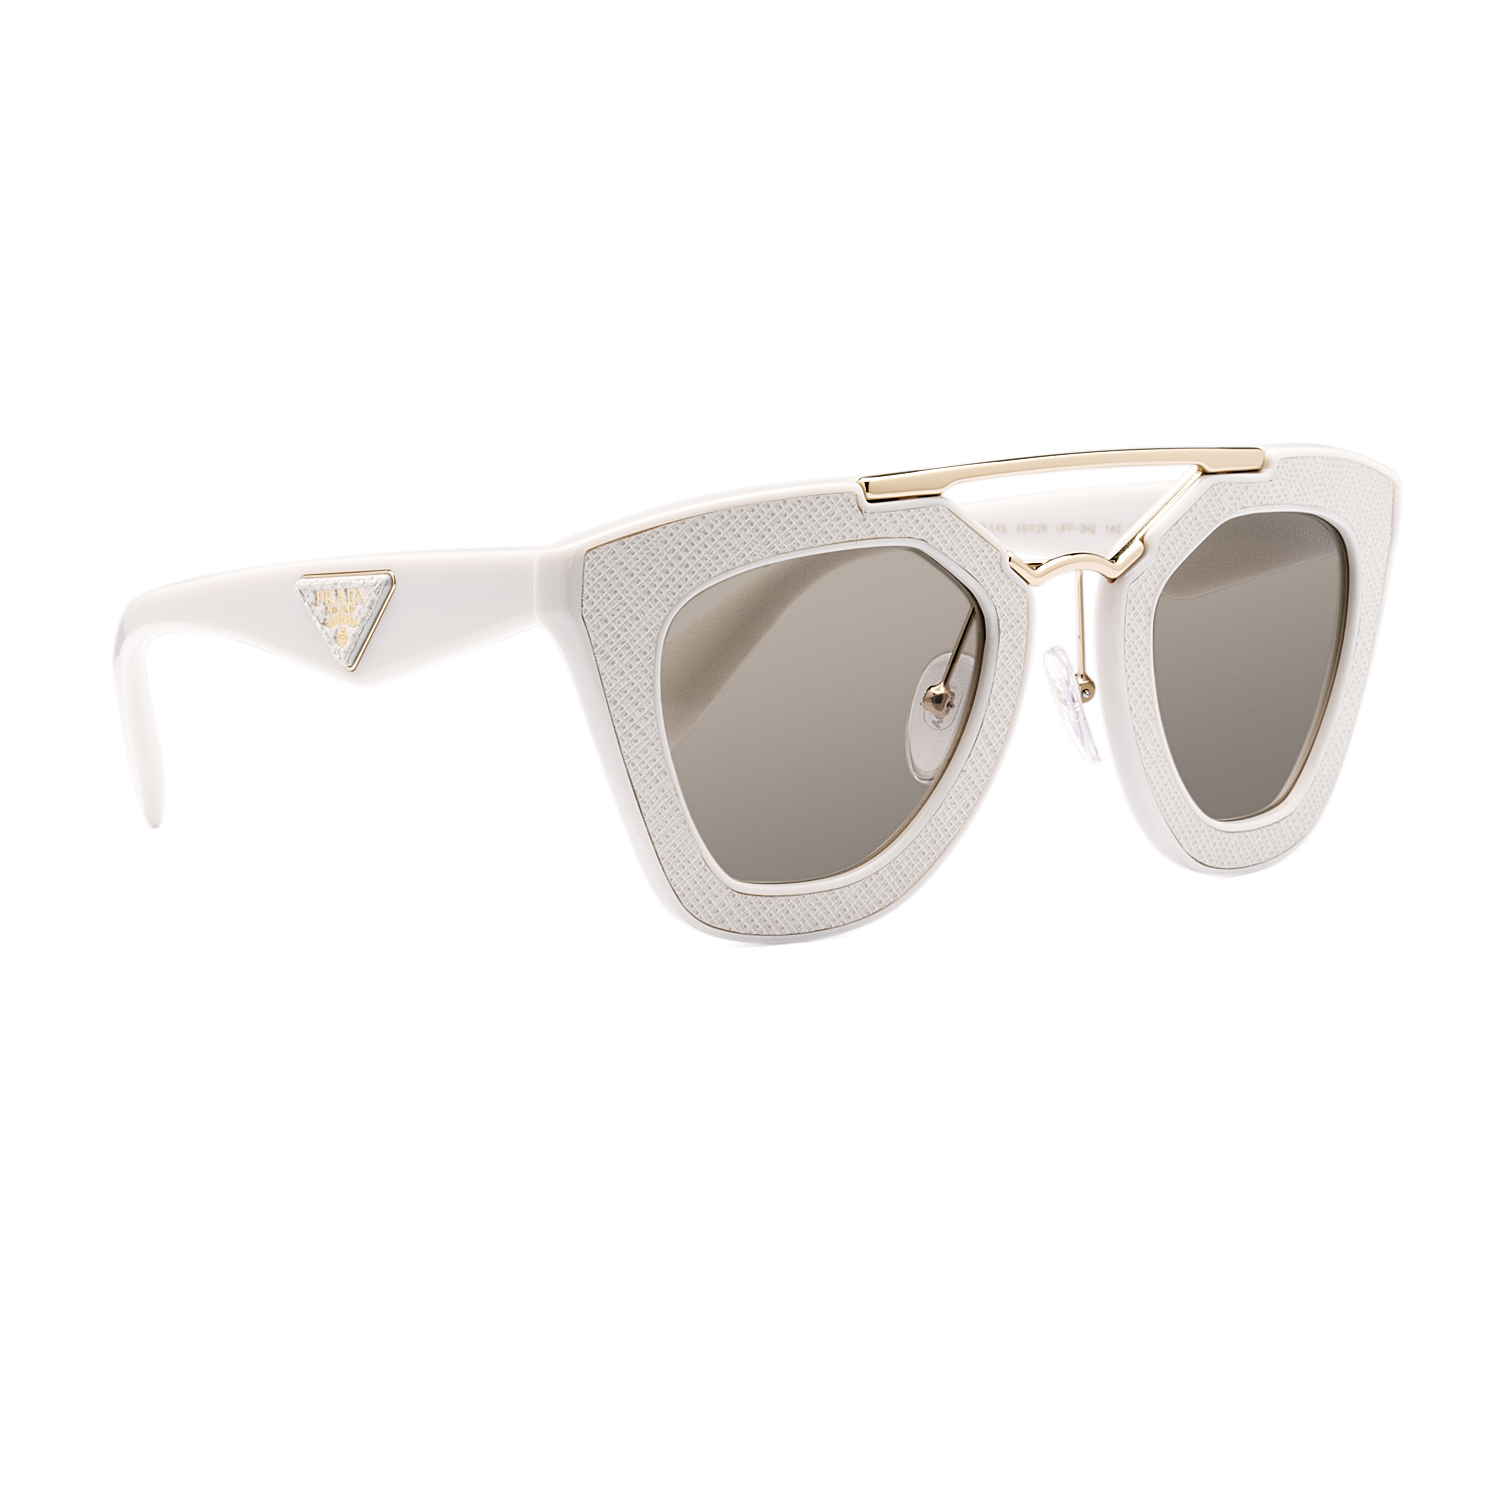 38130a4ed0a Prada 14SS Sunglasses UFP3H2 Ivory   Brown Gradient 8053672536416